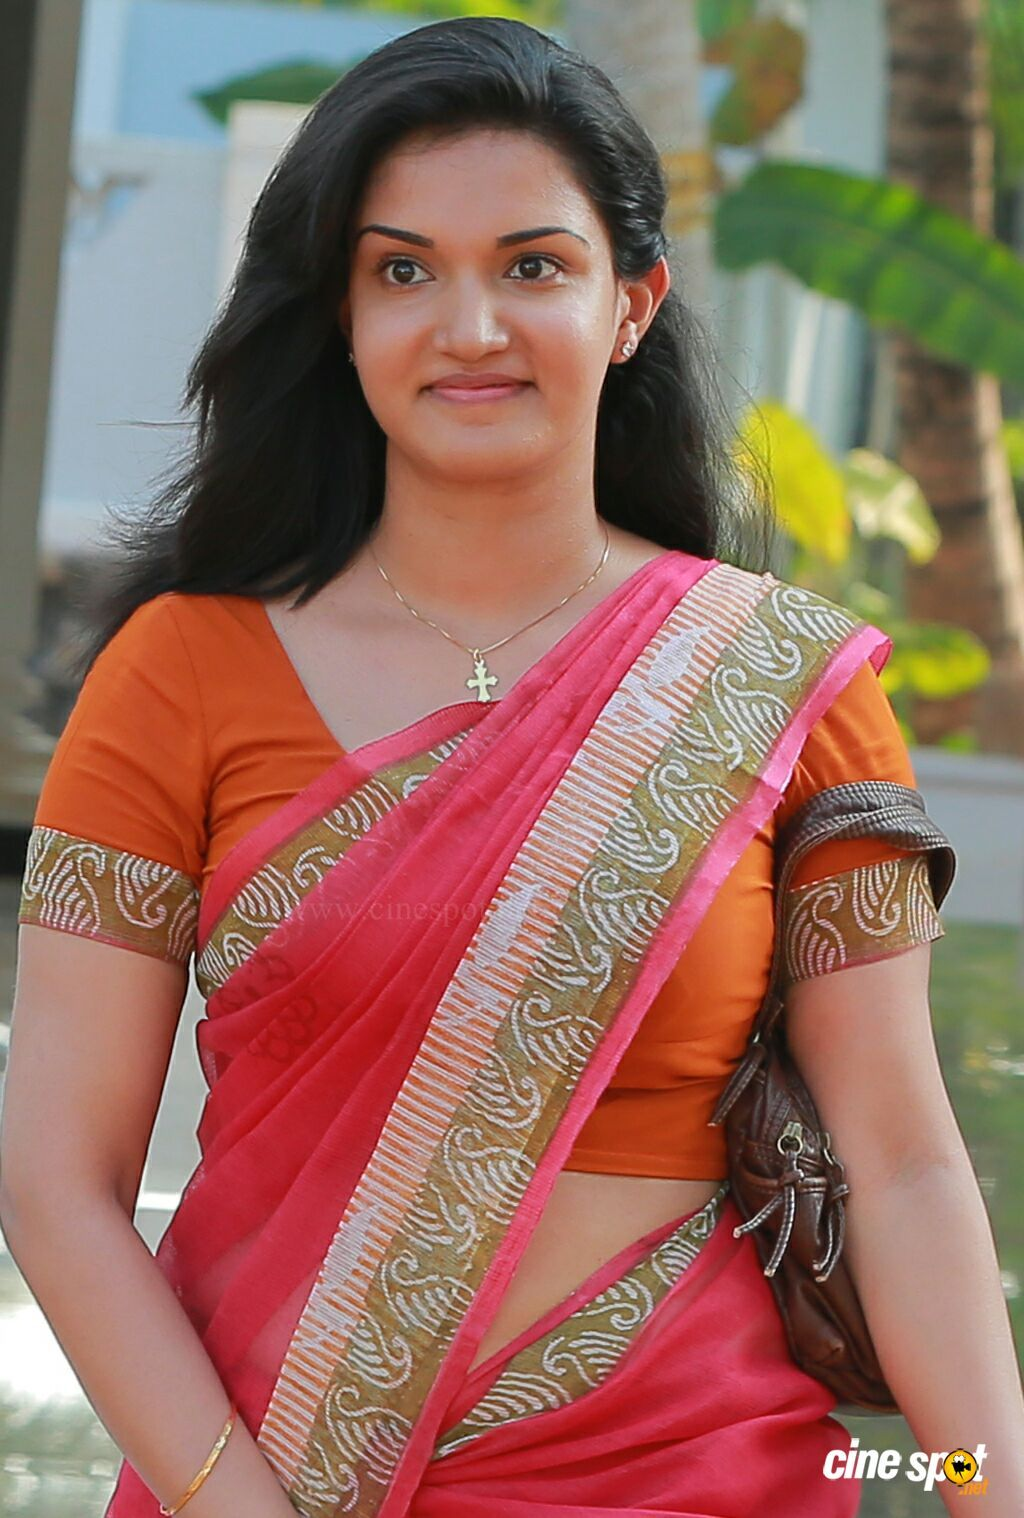 honey rose dubai